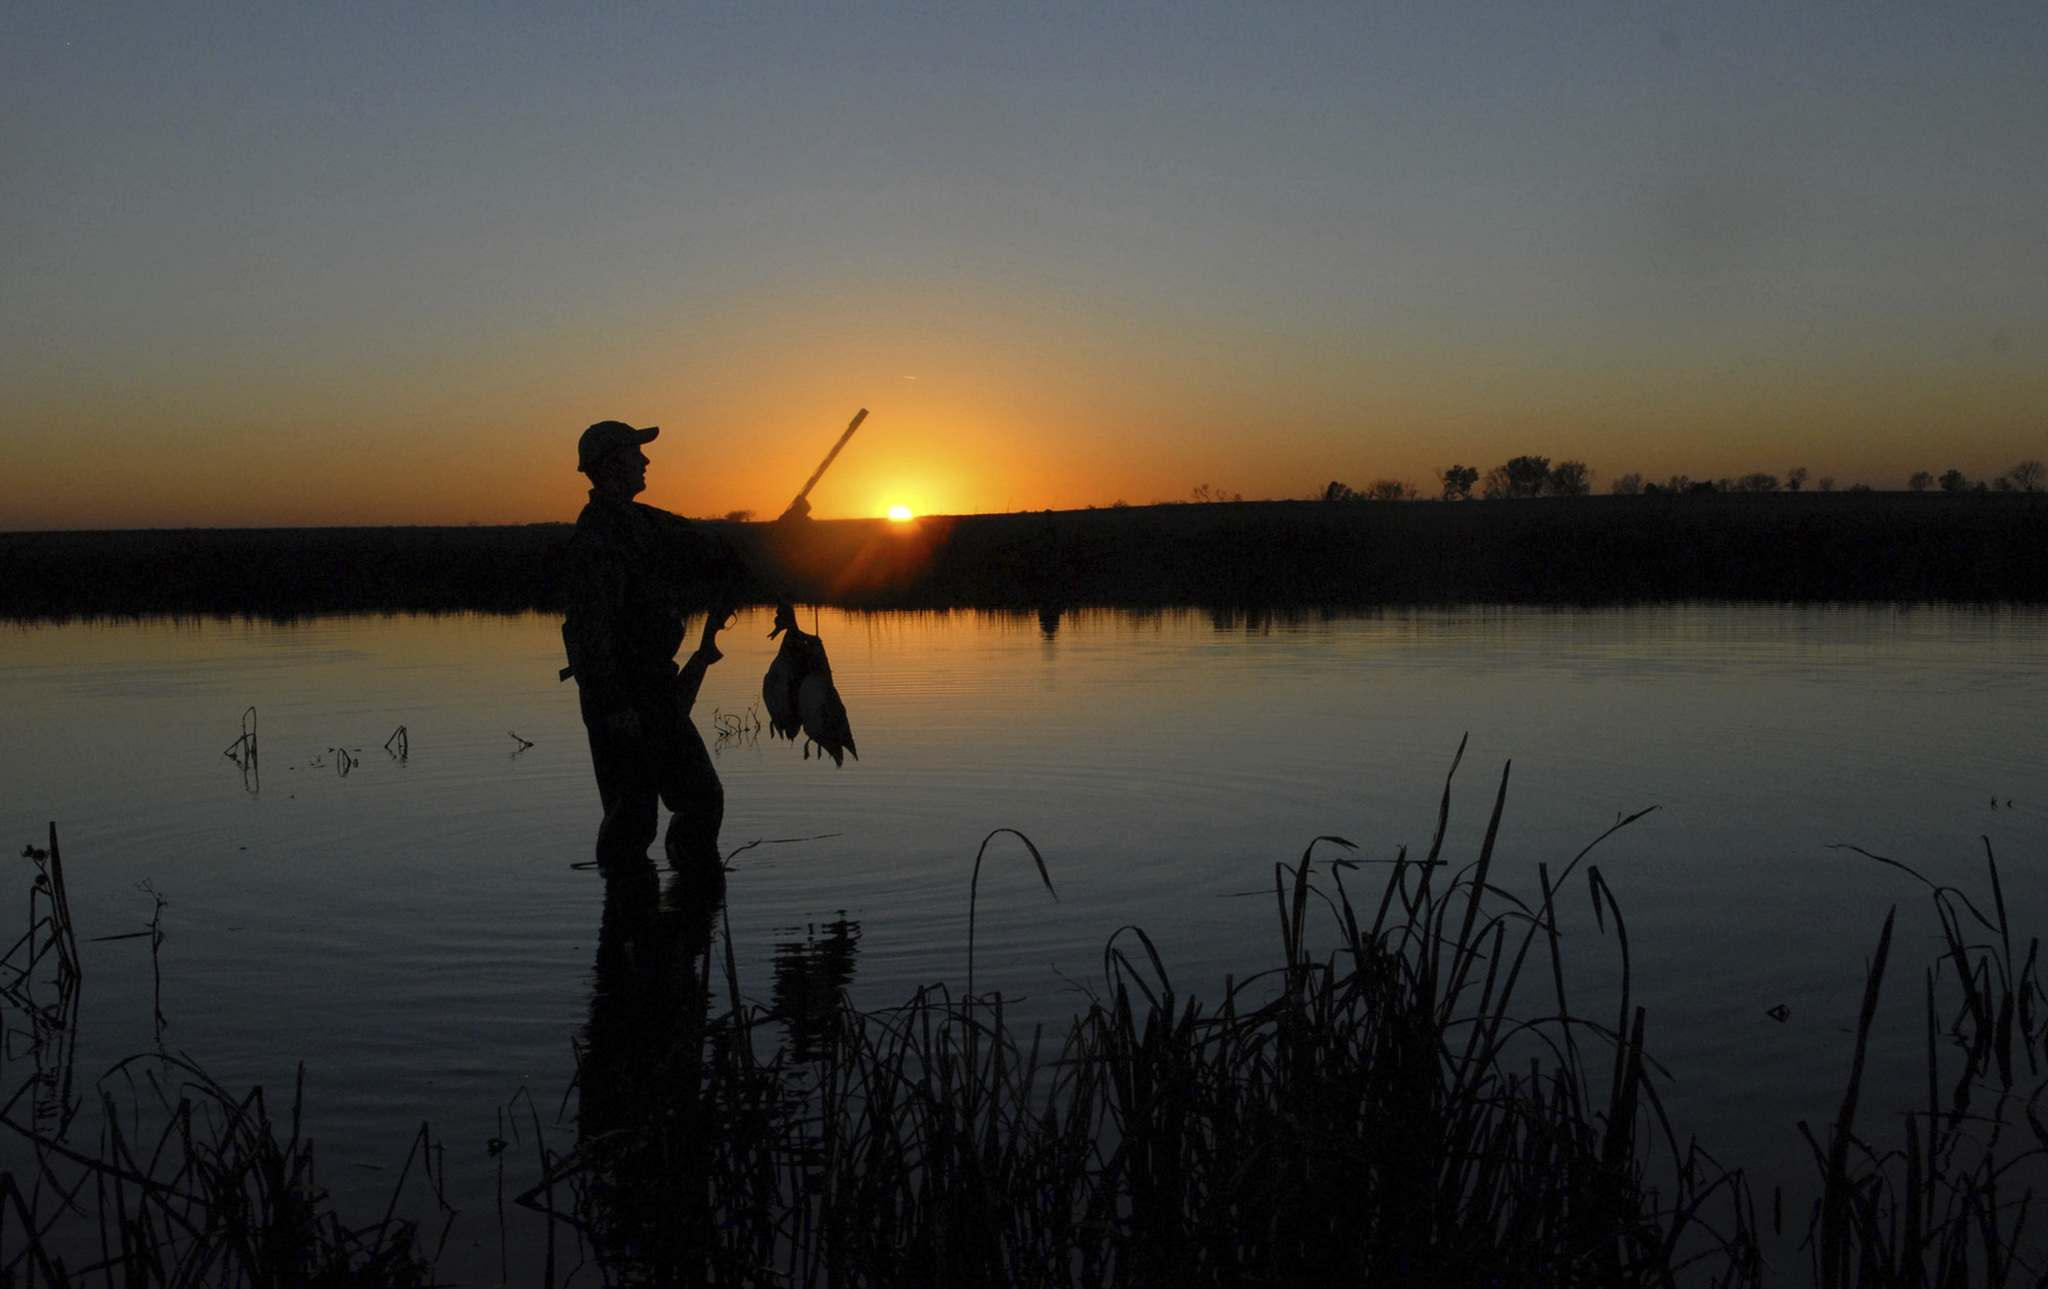 Dennis Anderson / Minneapolis Star TribuneThousands of American hunters and anglers visit Manitoba every year. Welcoming them with open arms helps local tourism continue to flourish.